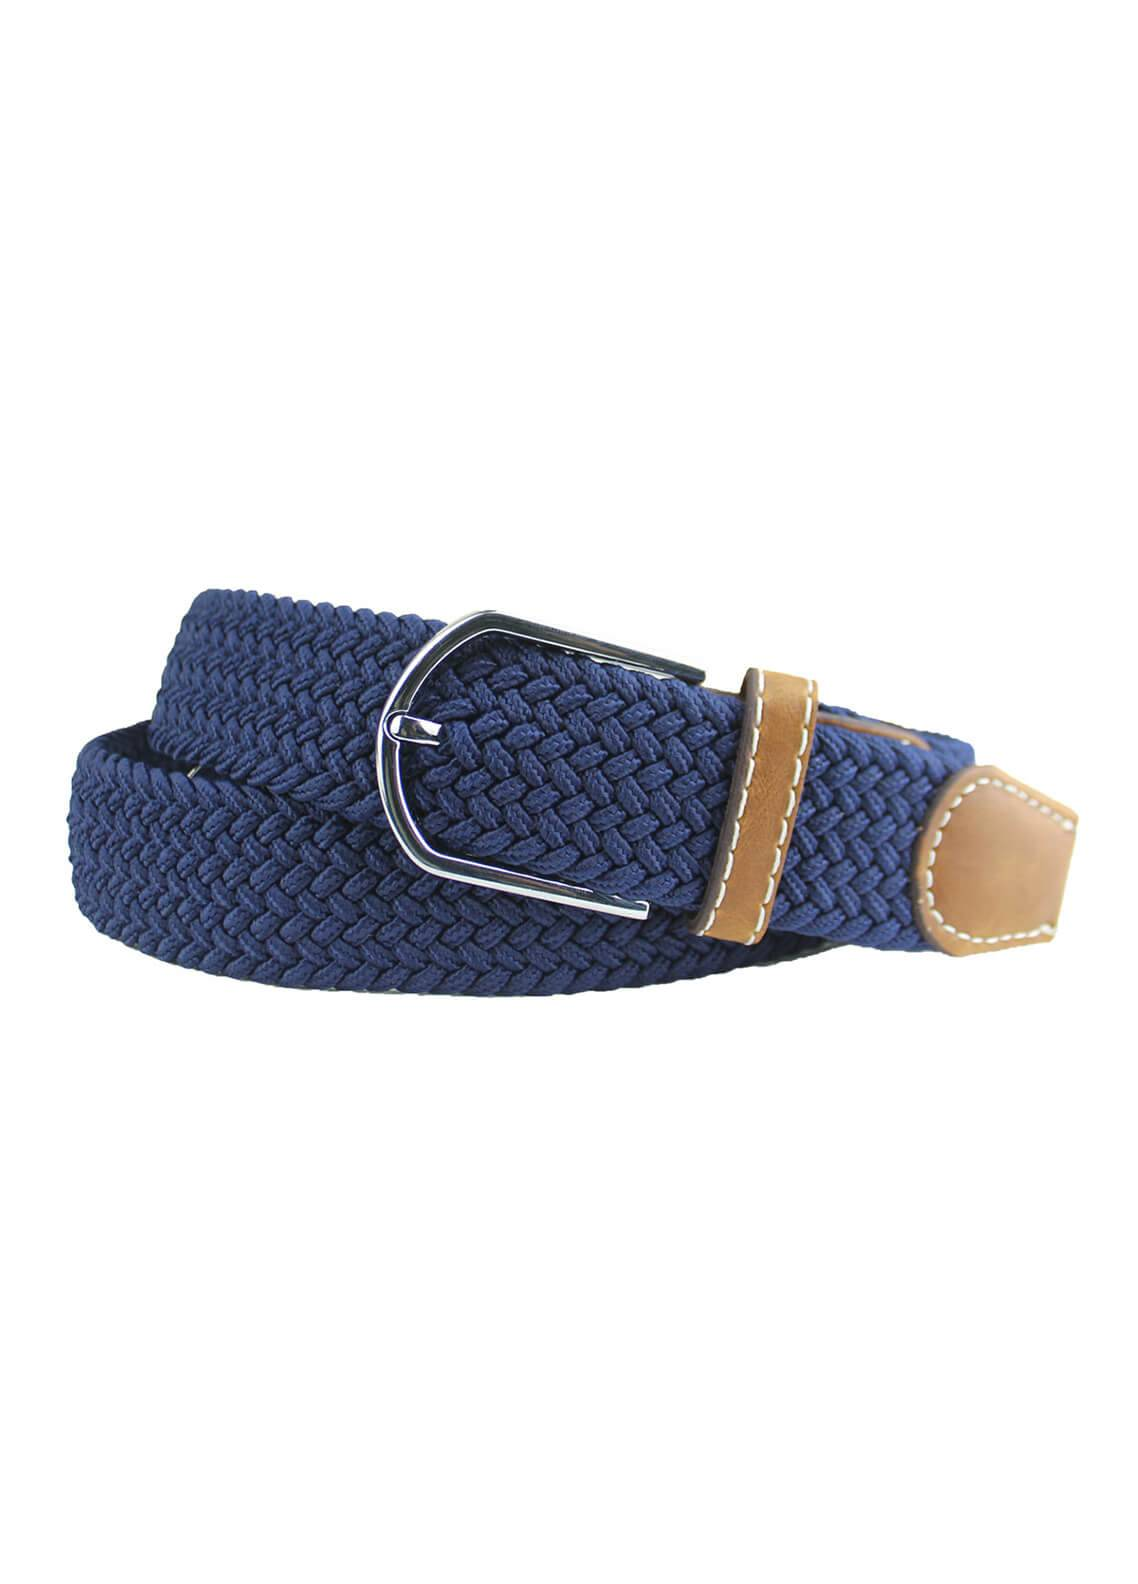 Shahzeb Saeed Textured Leather Men Belts BELT-080 Royal Blue - Casual Accessories